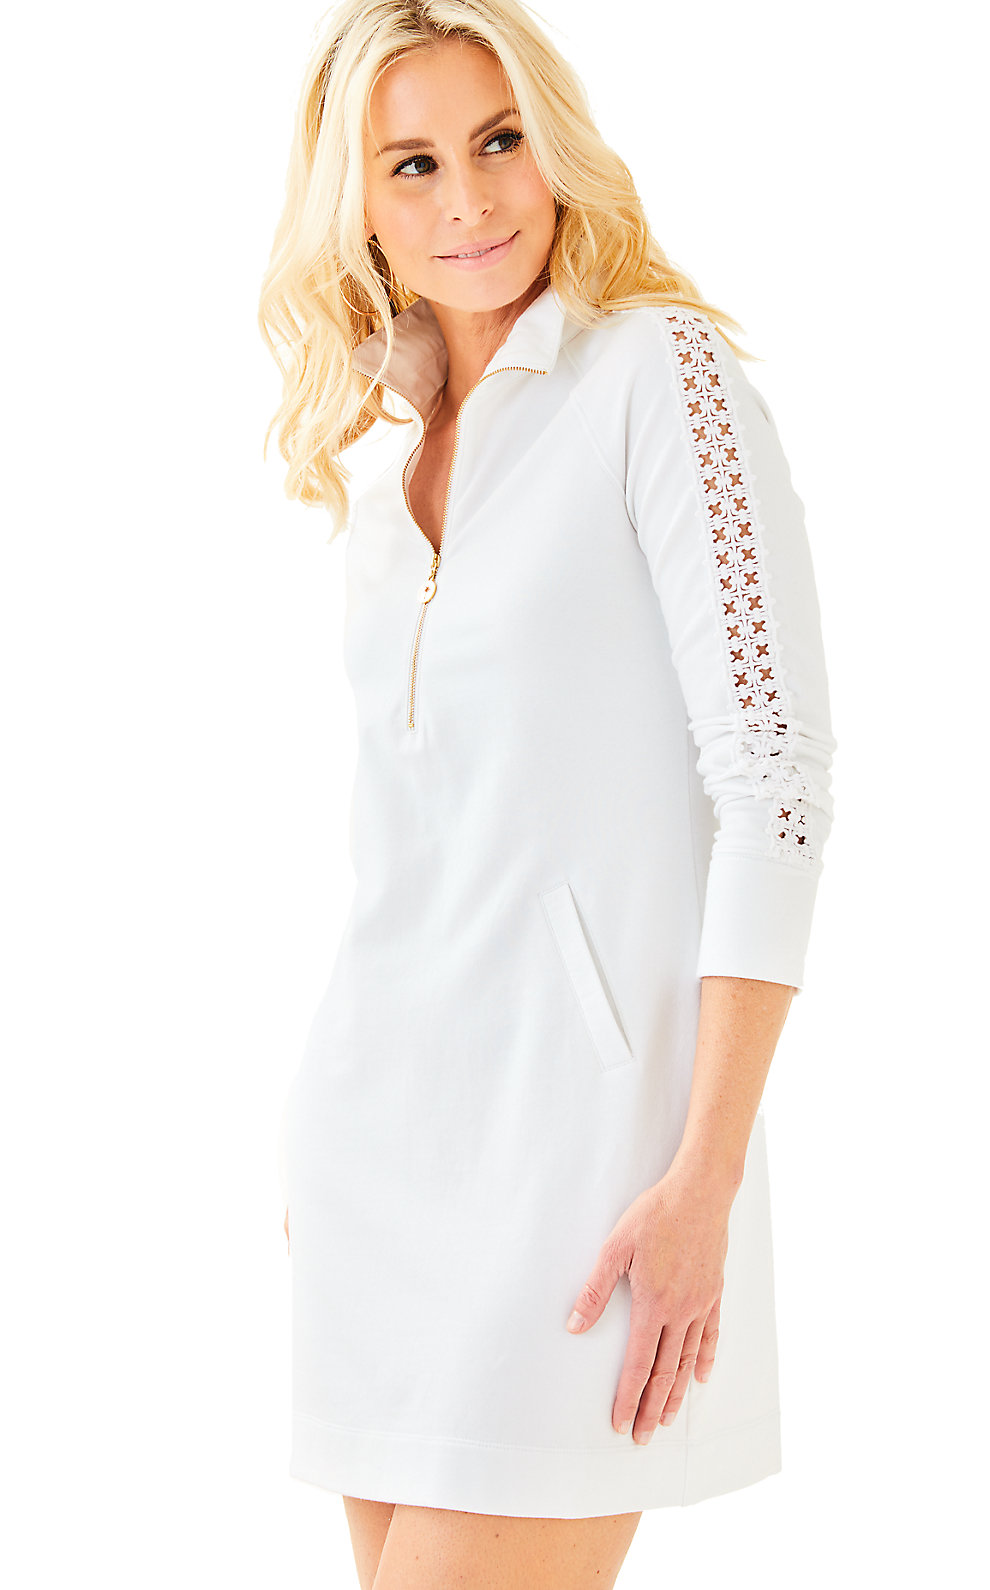 Lilly Pulitzer Skipper Popover Dress